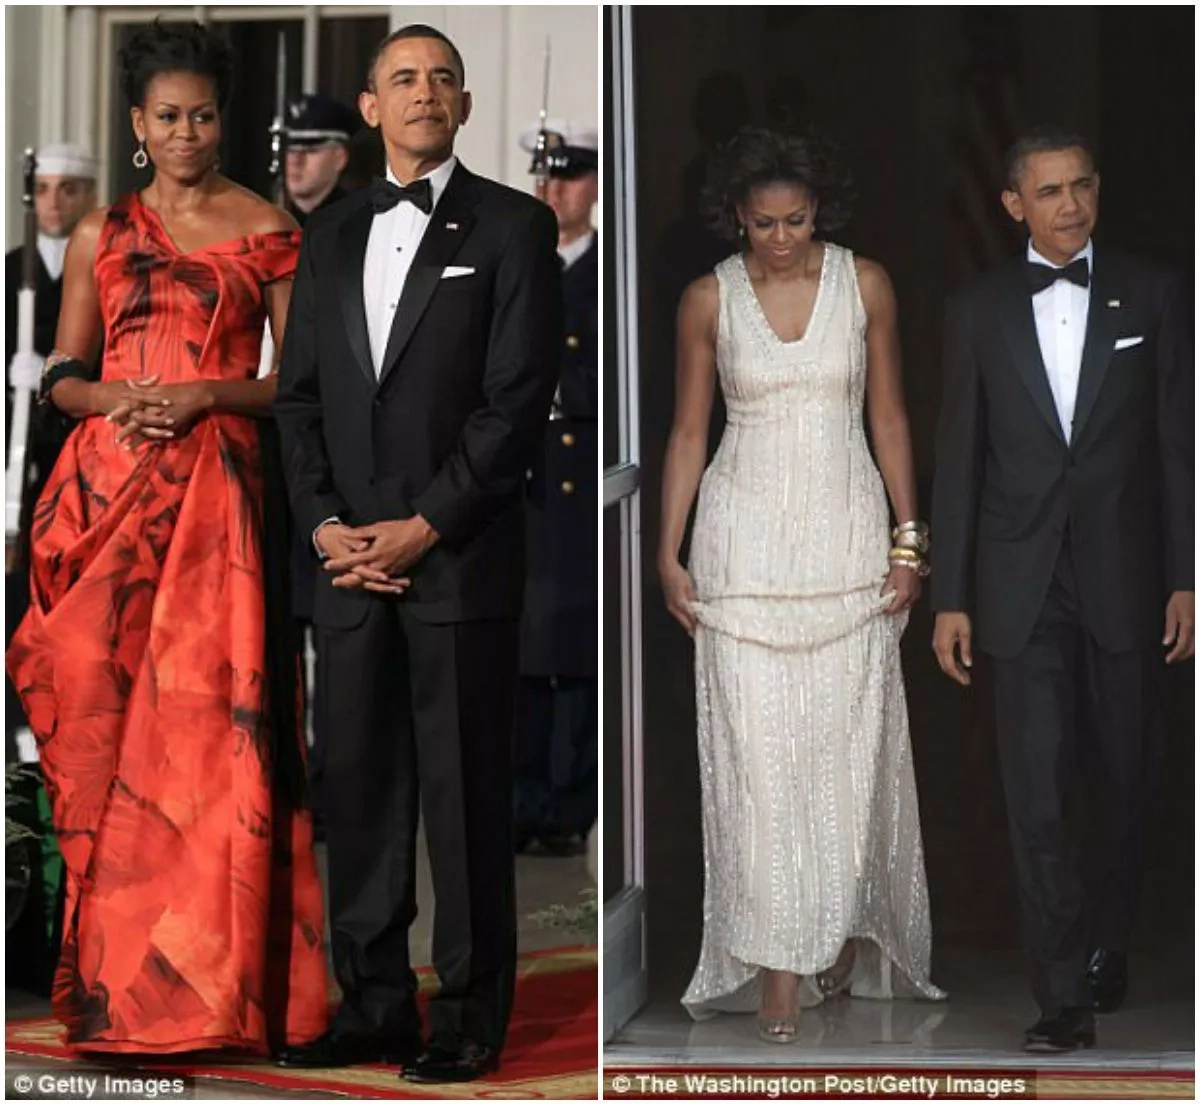 Michelle's revelation highlighted the contrasting scrutinies the former US First Couple faced